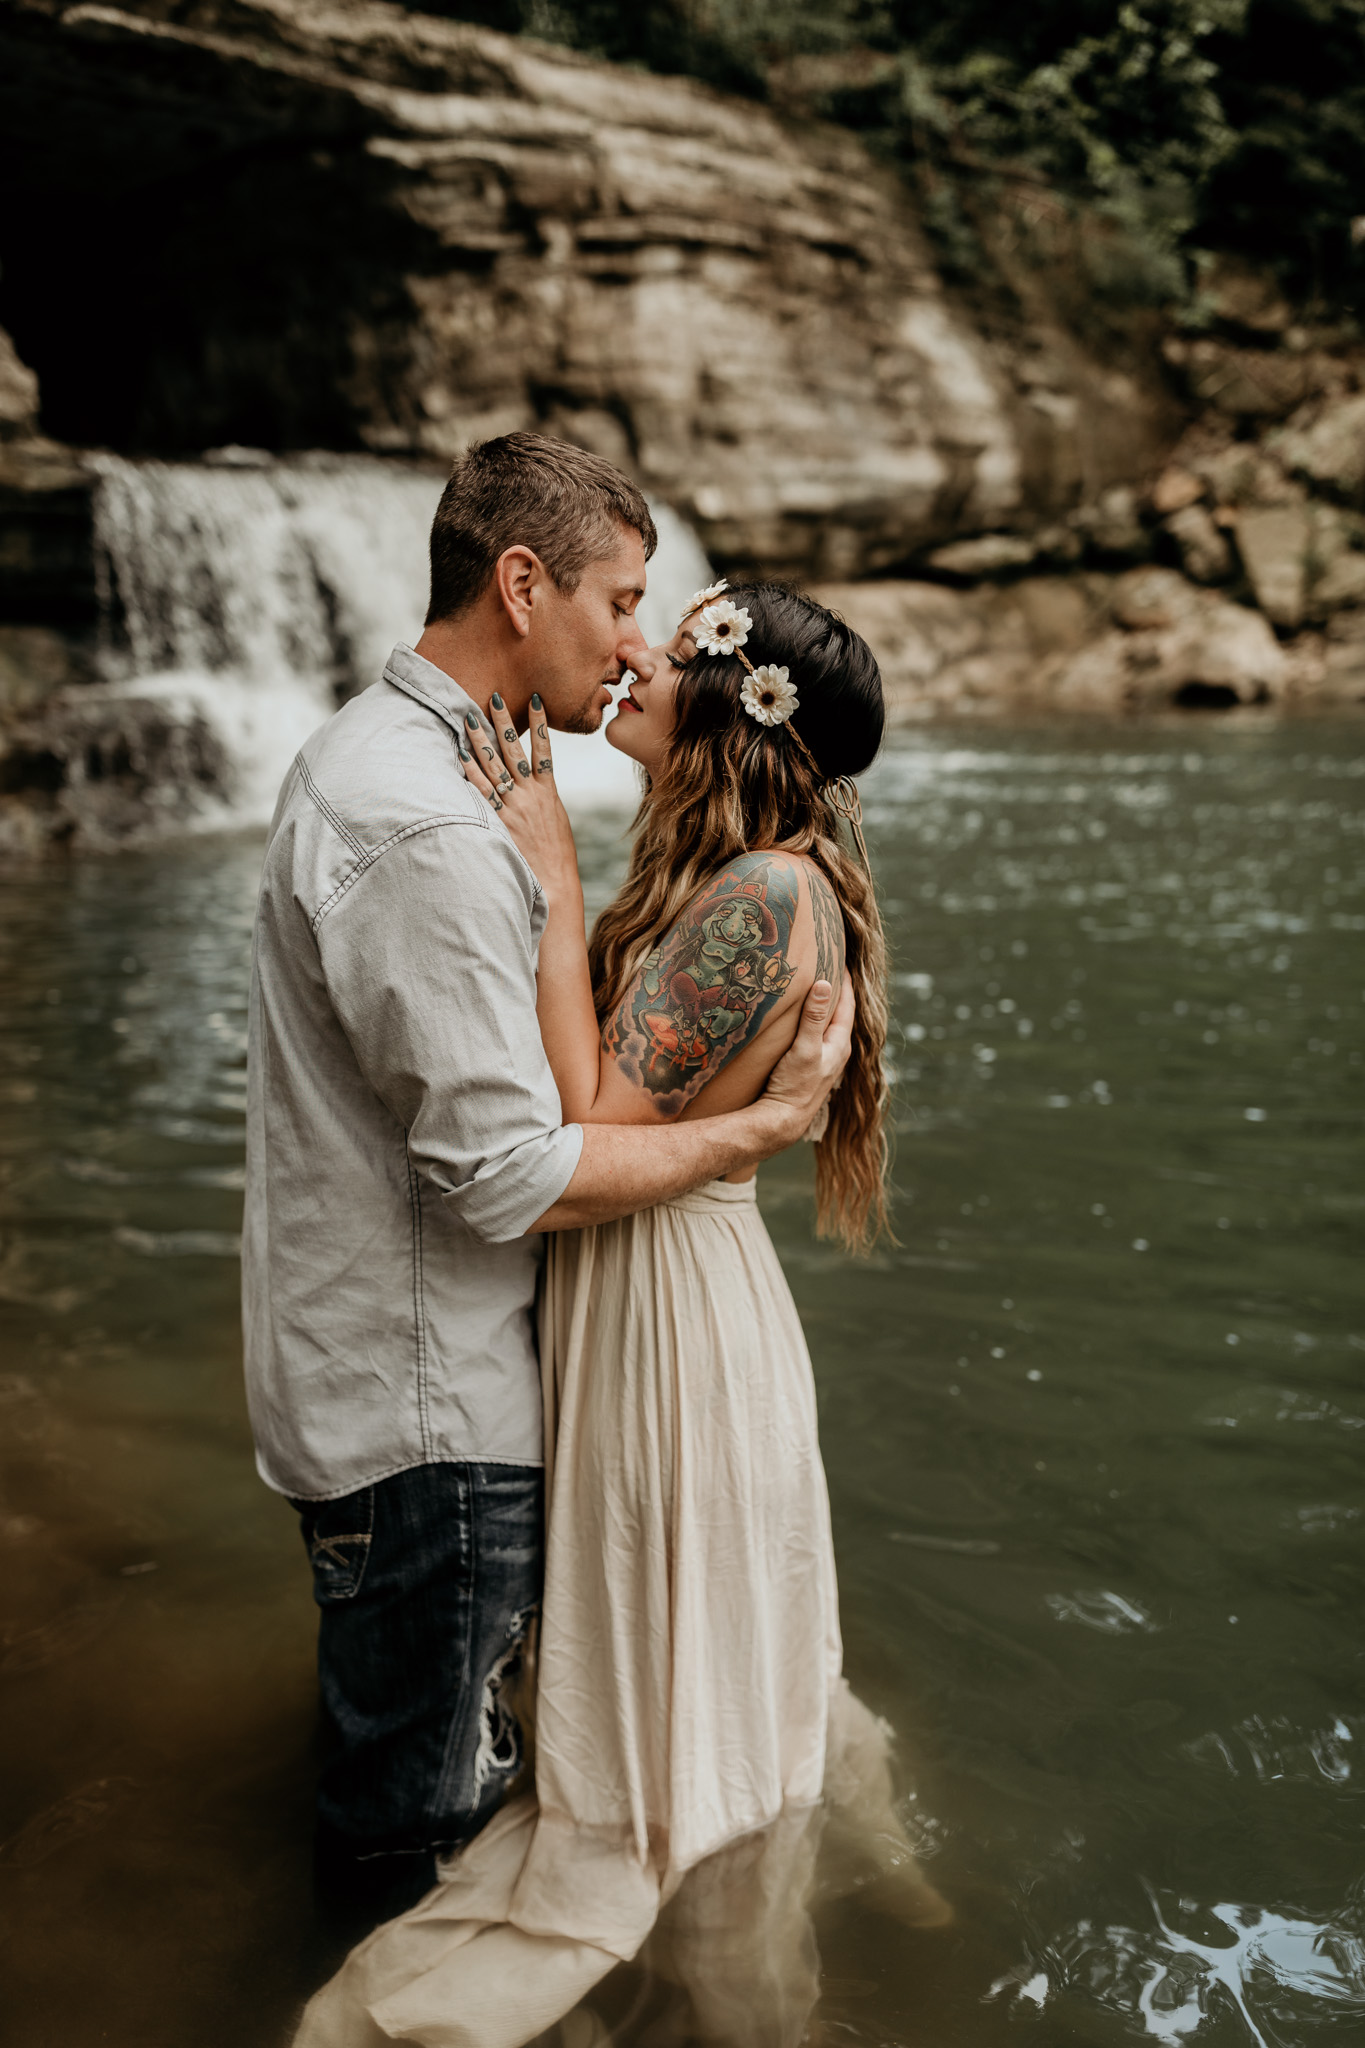 Couple standing in water sharing a special moment